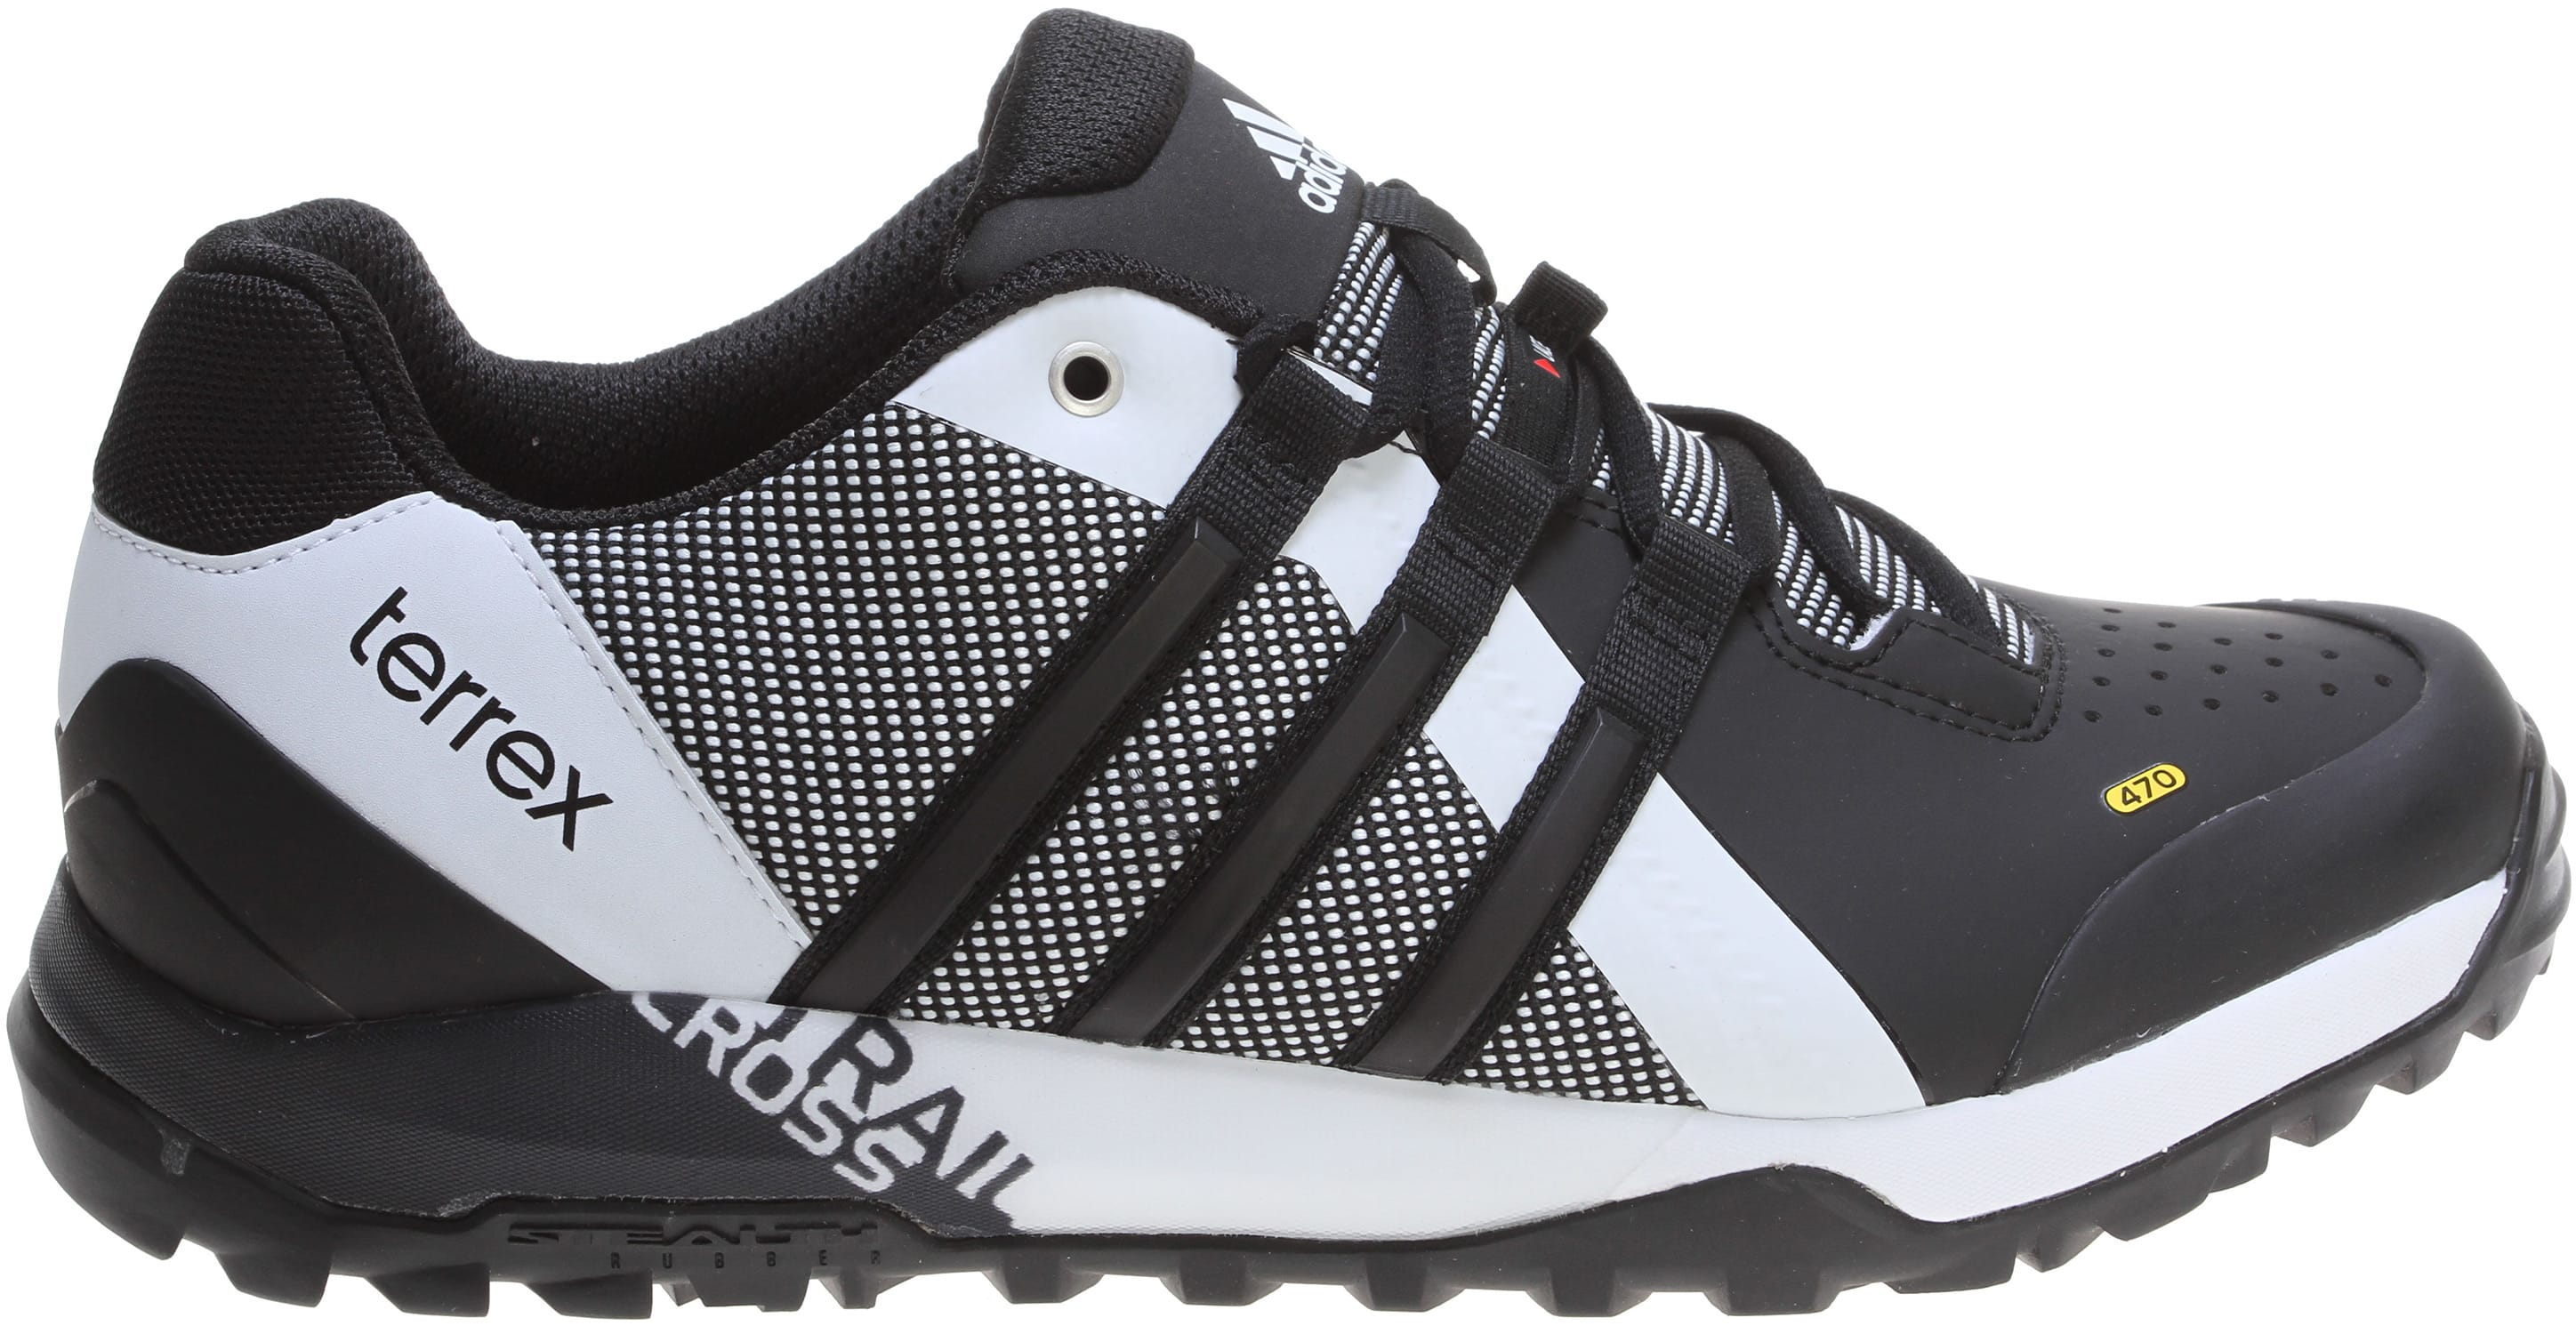 Hiking Cross Trail Terrex Shoes Adidas BqzOHt